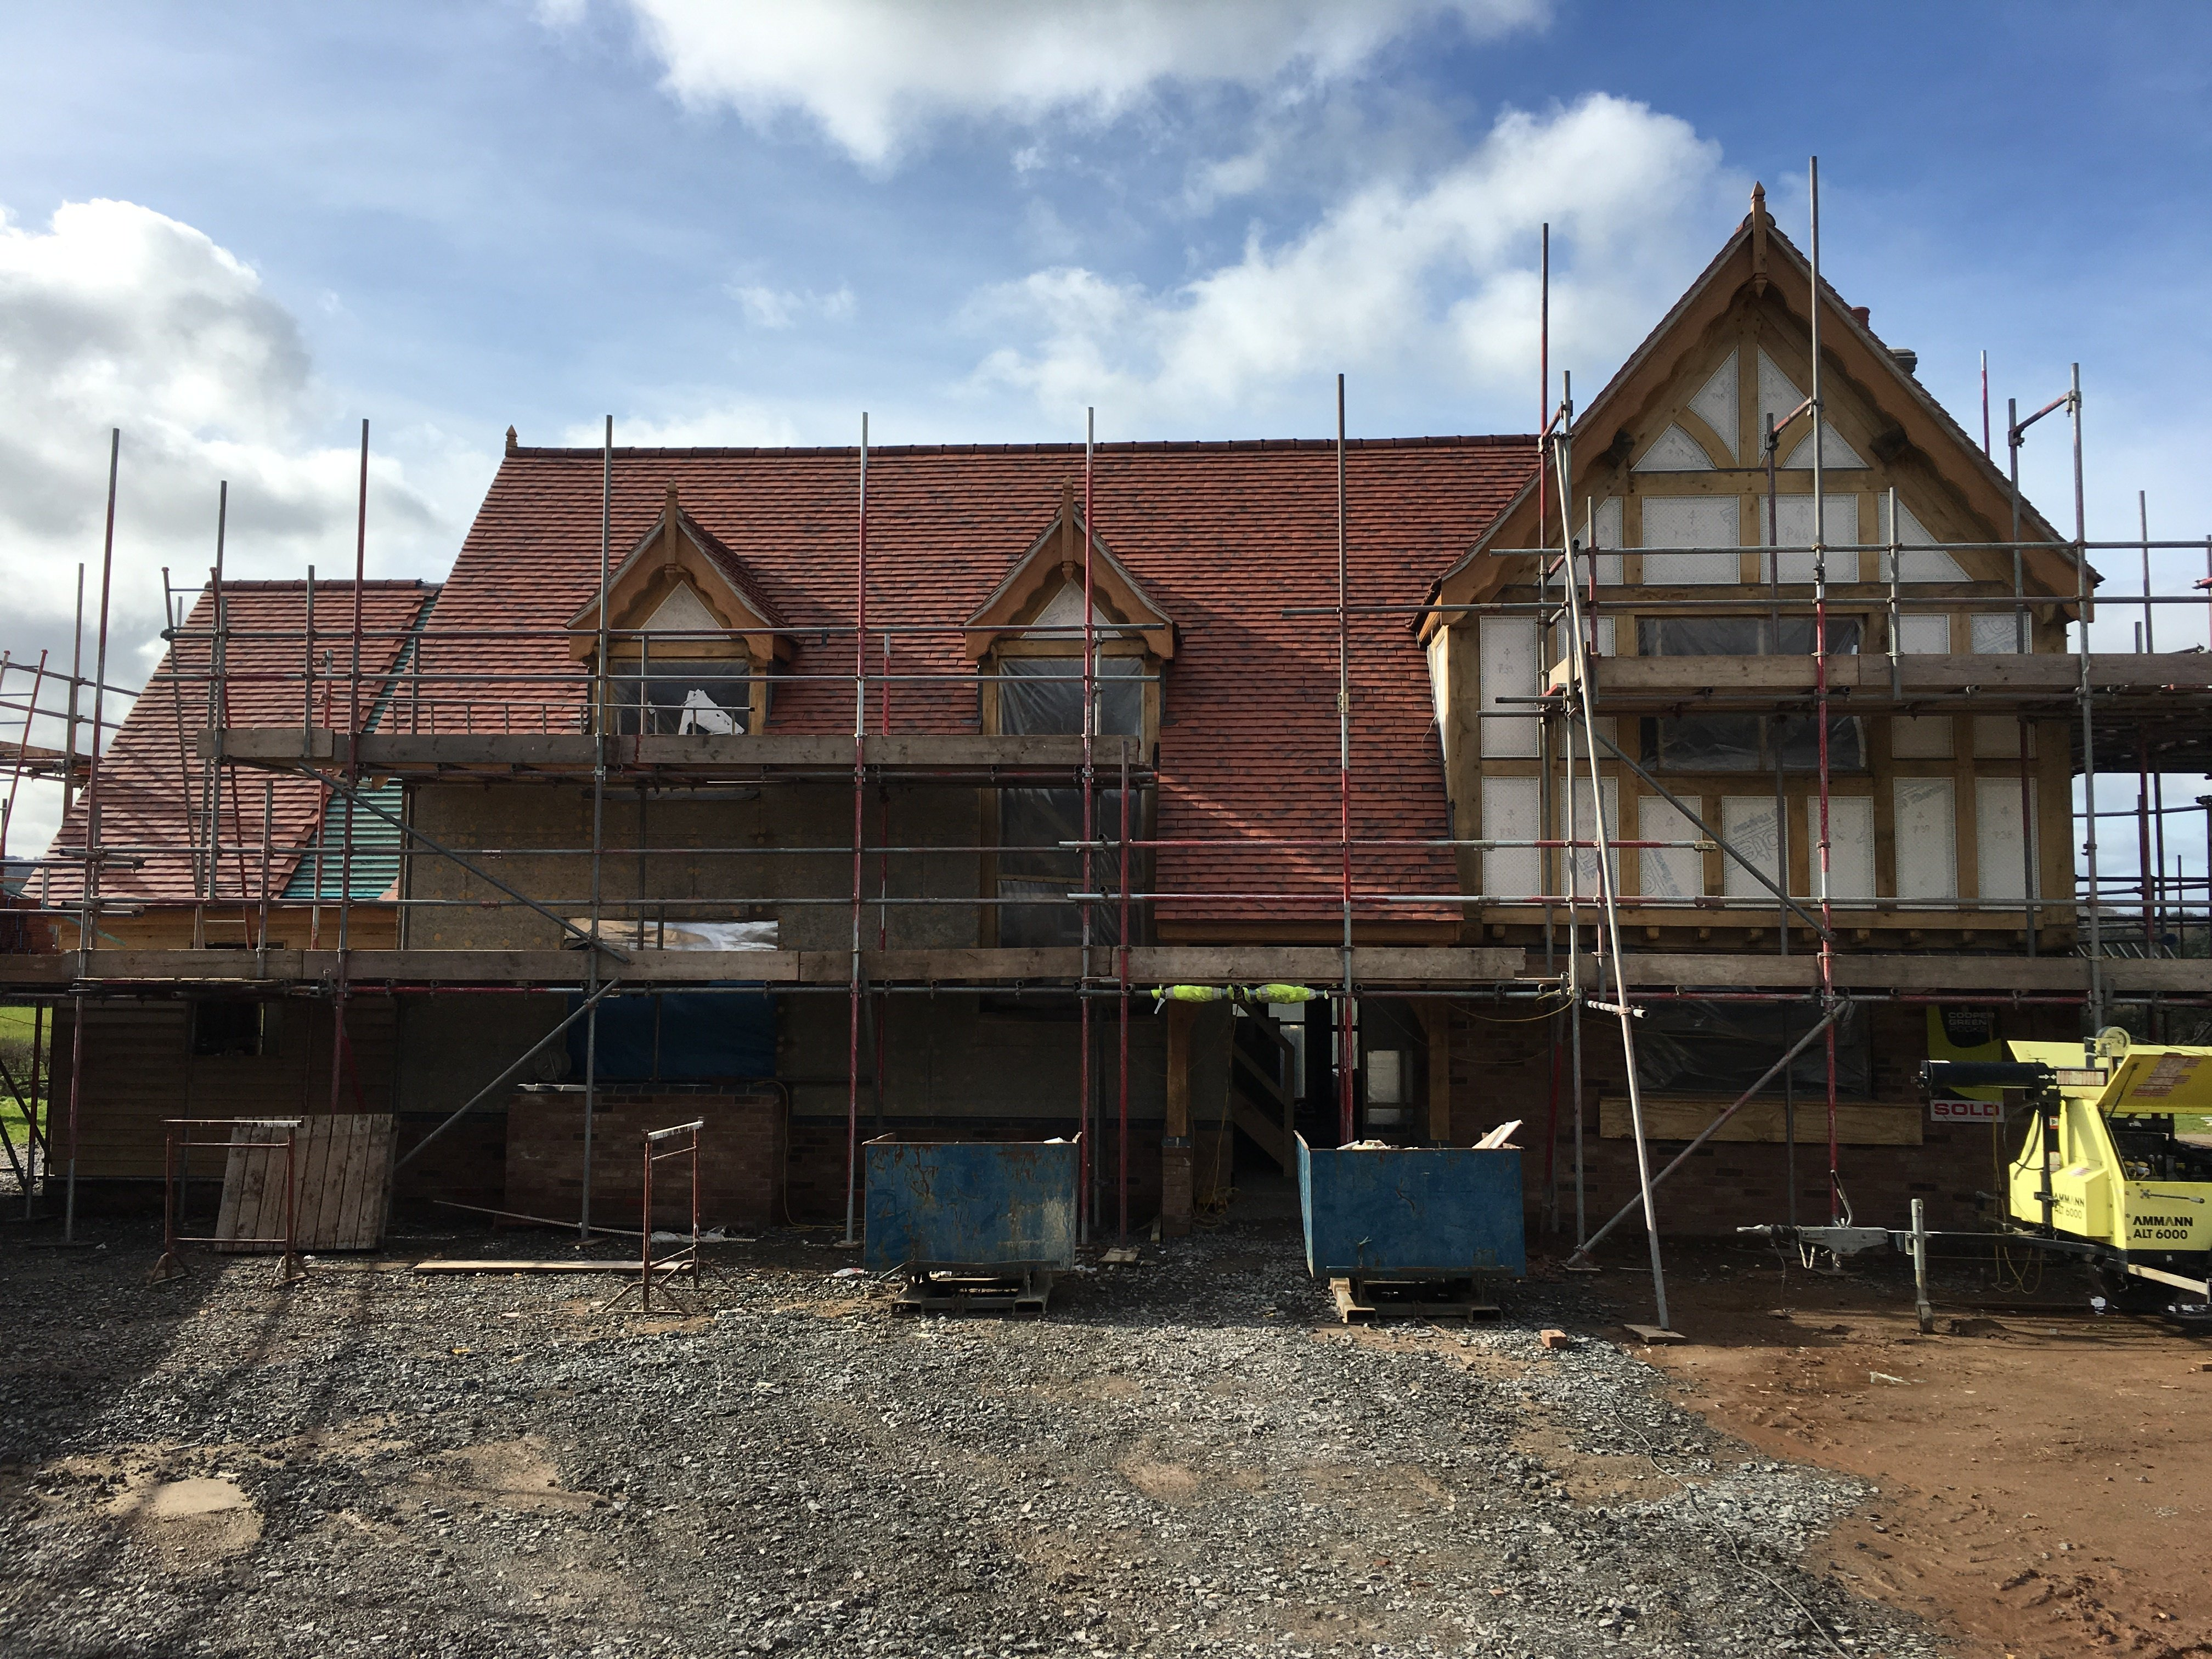 Tudor style luxury new build home for sale in Shrewsbury, Shropshire.  Building plots also for sale.